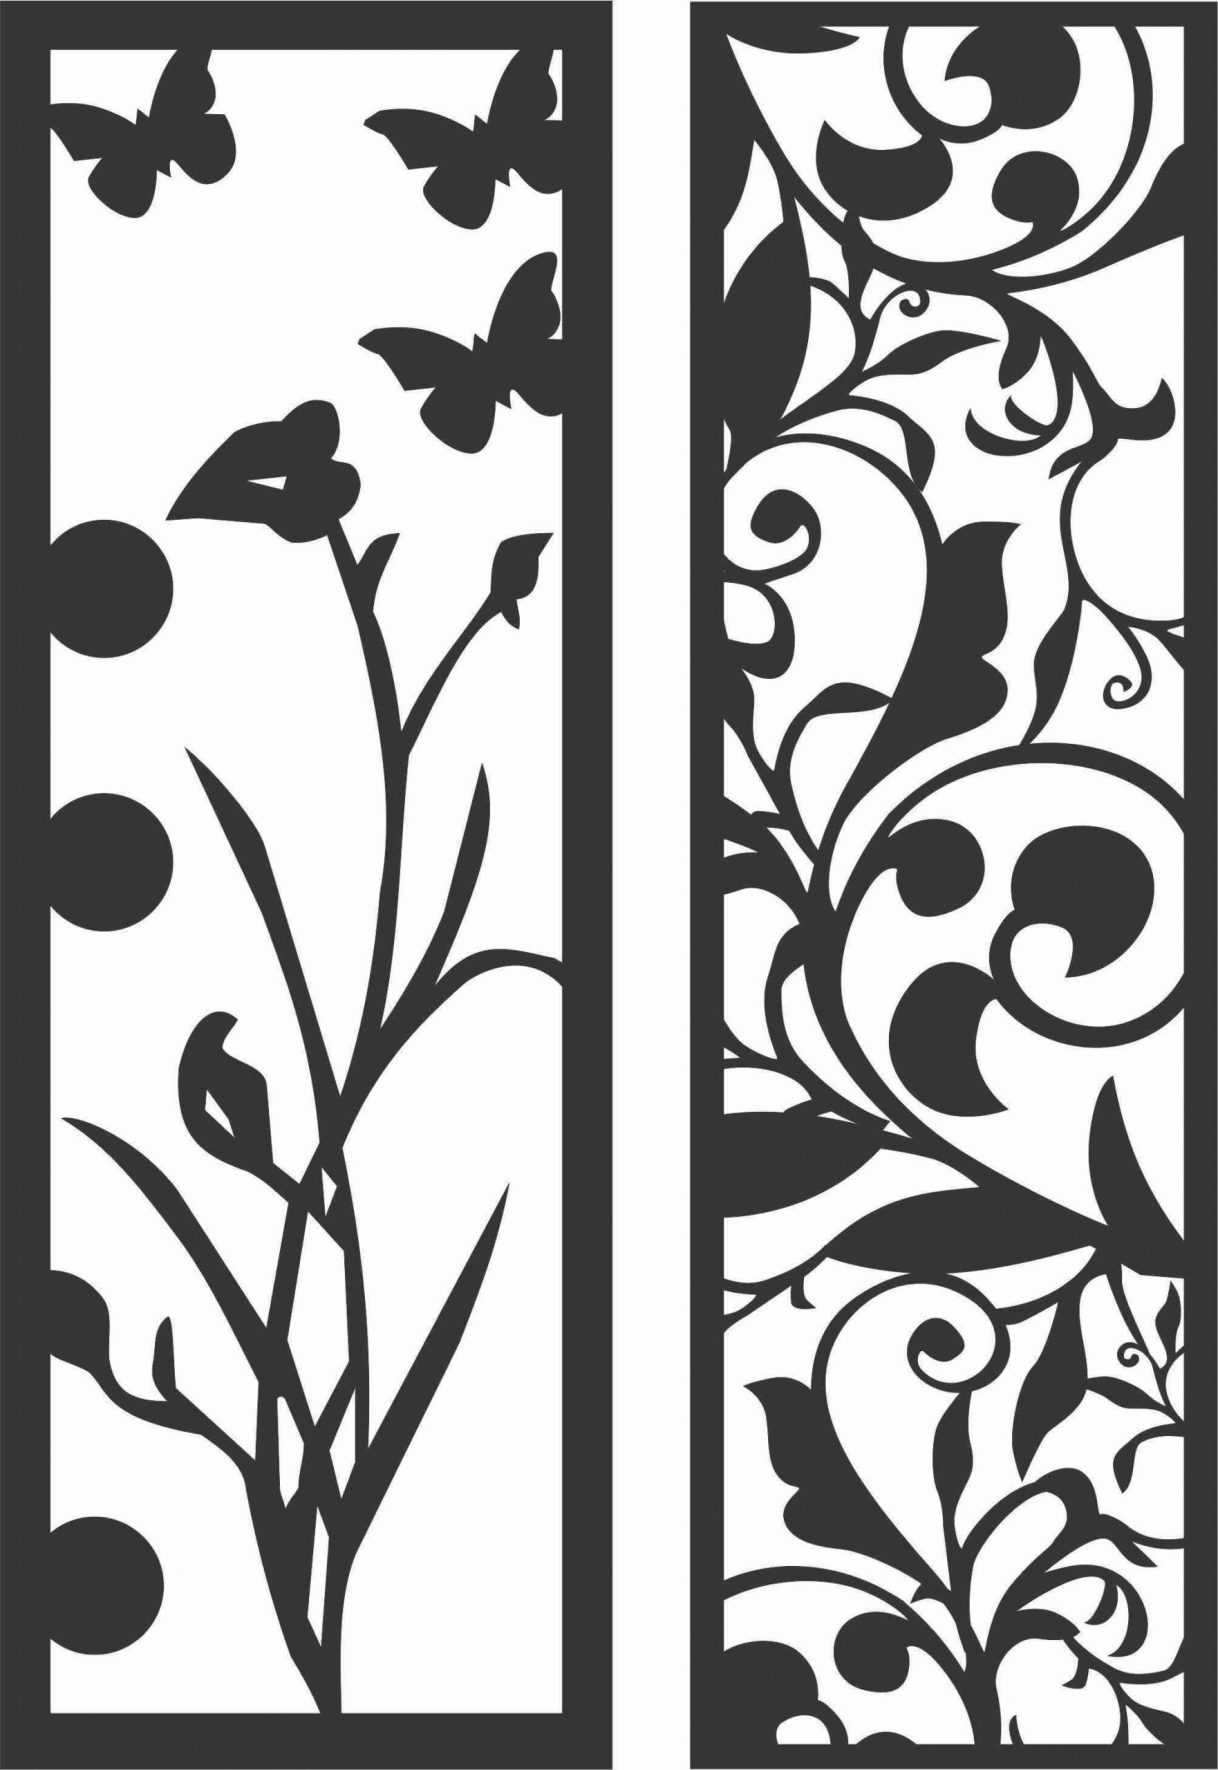 Decorative Screen Patterns For Laser Cutting 176 Free DXF File